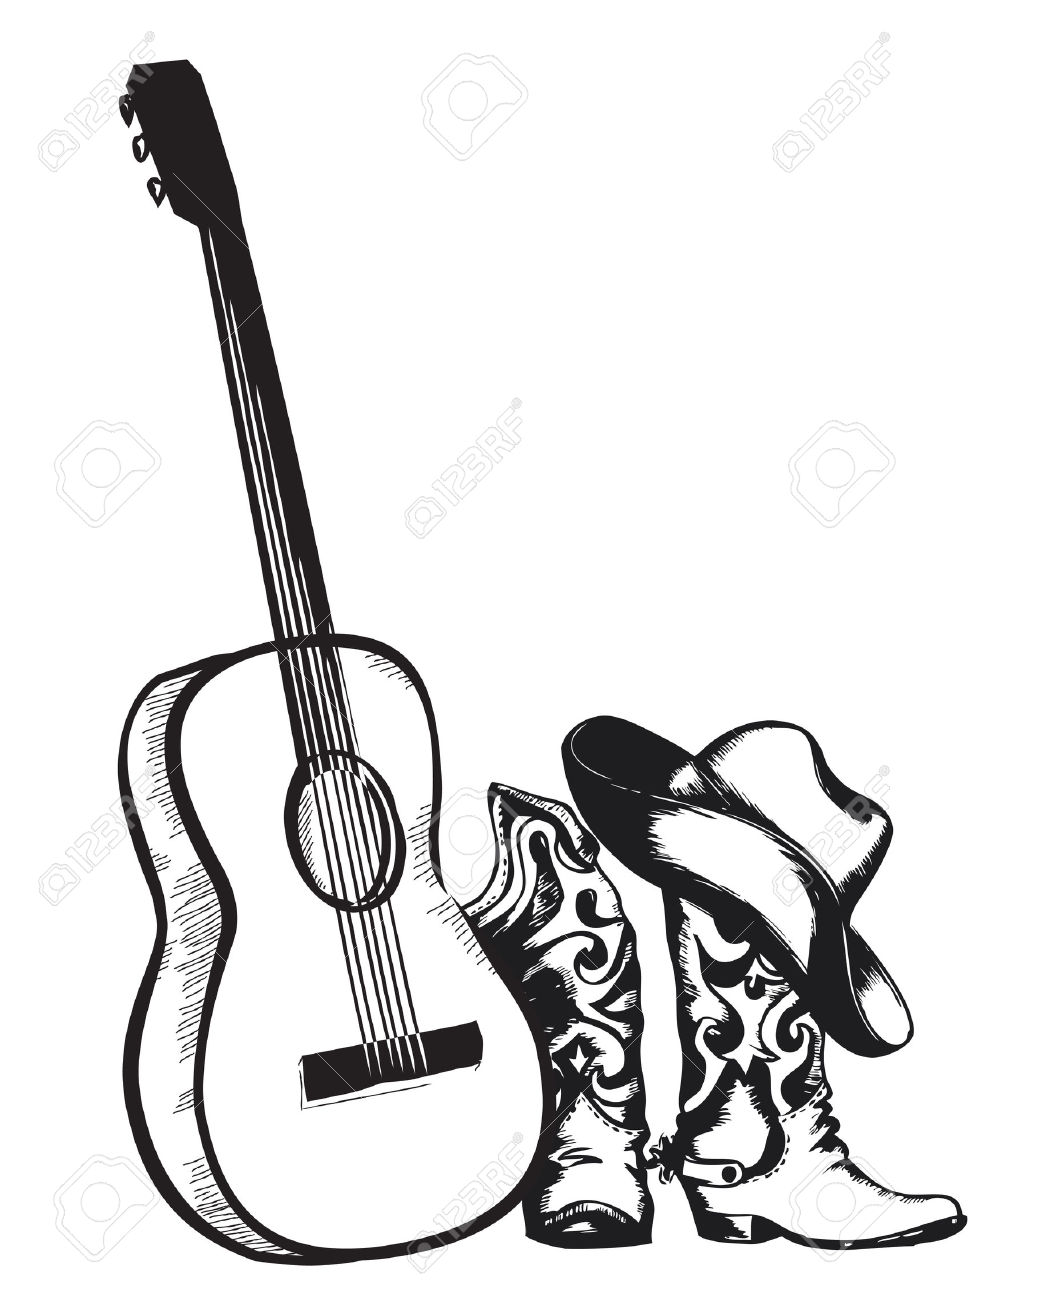 Western music clipart black and white png banner stock Musical Instruments Cliparts | Free download best Musical ... banner stock